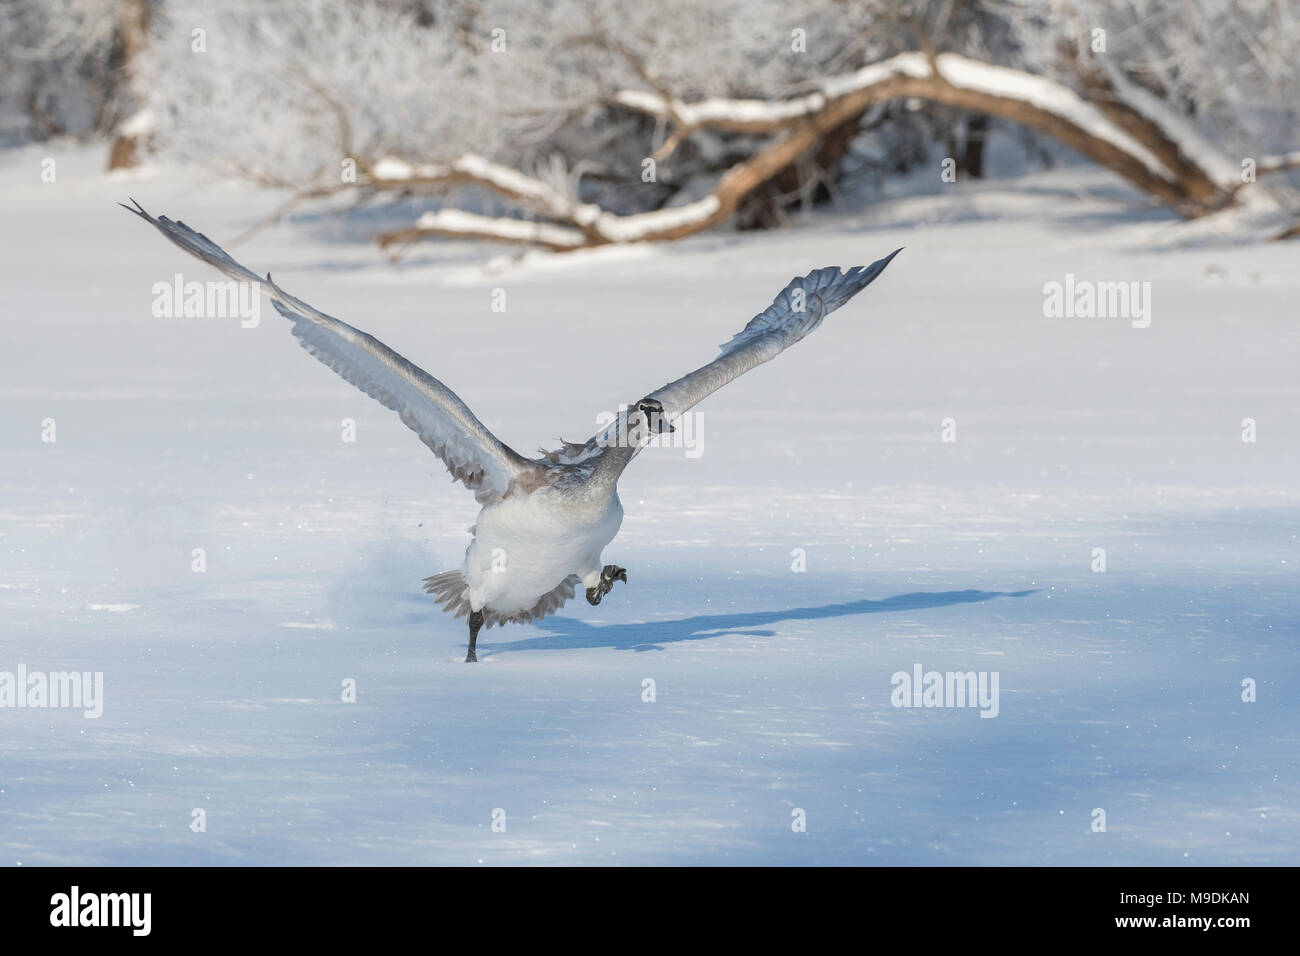 Trumpeter swan (Cygnus buccinator) lifting off of the St. Croix river, WI, USA, by Dominique Braud/Dem binsky Photo Assoc - Stock Image